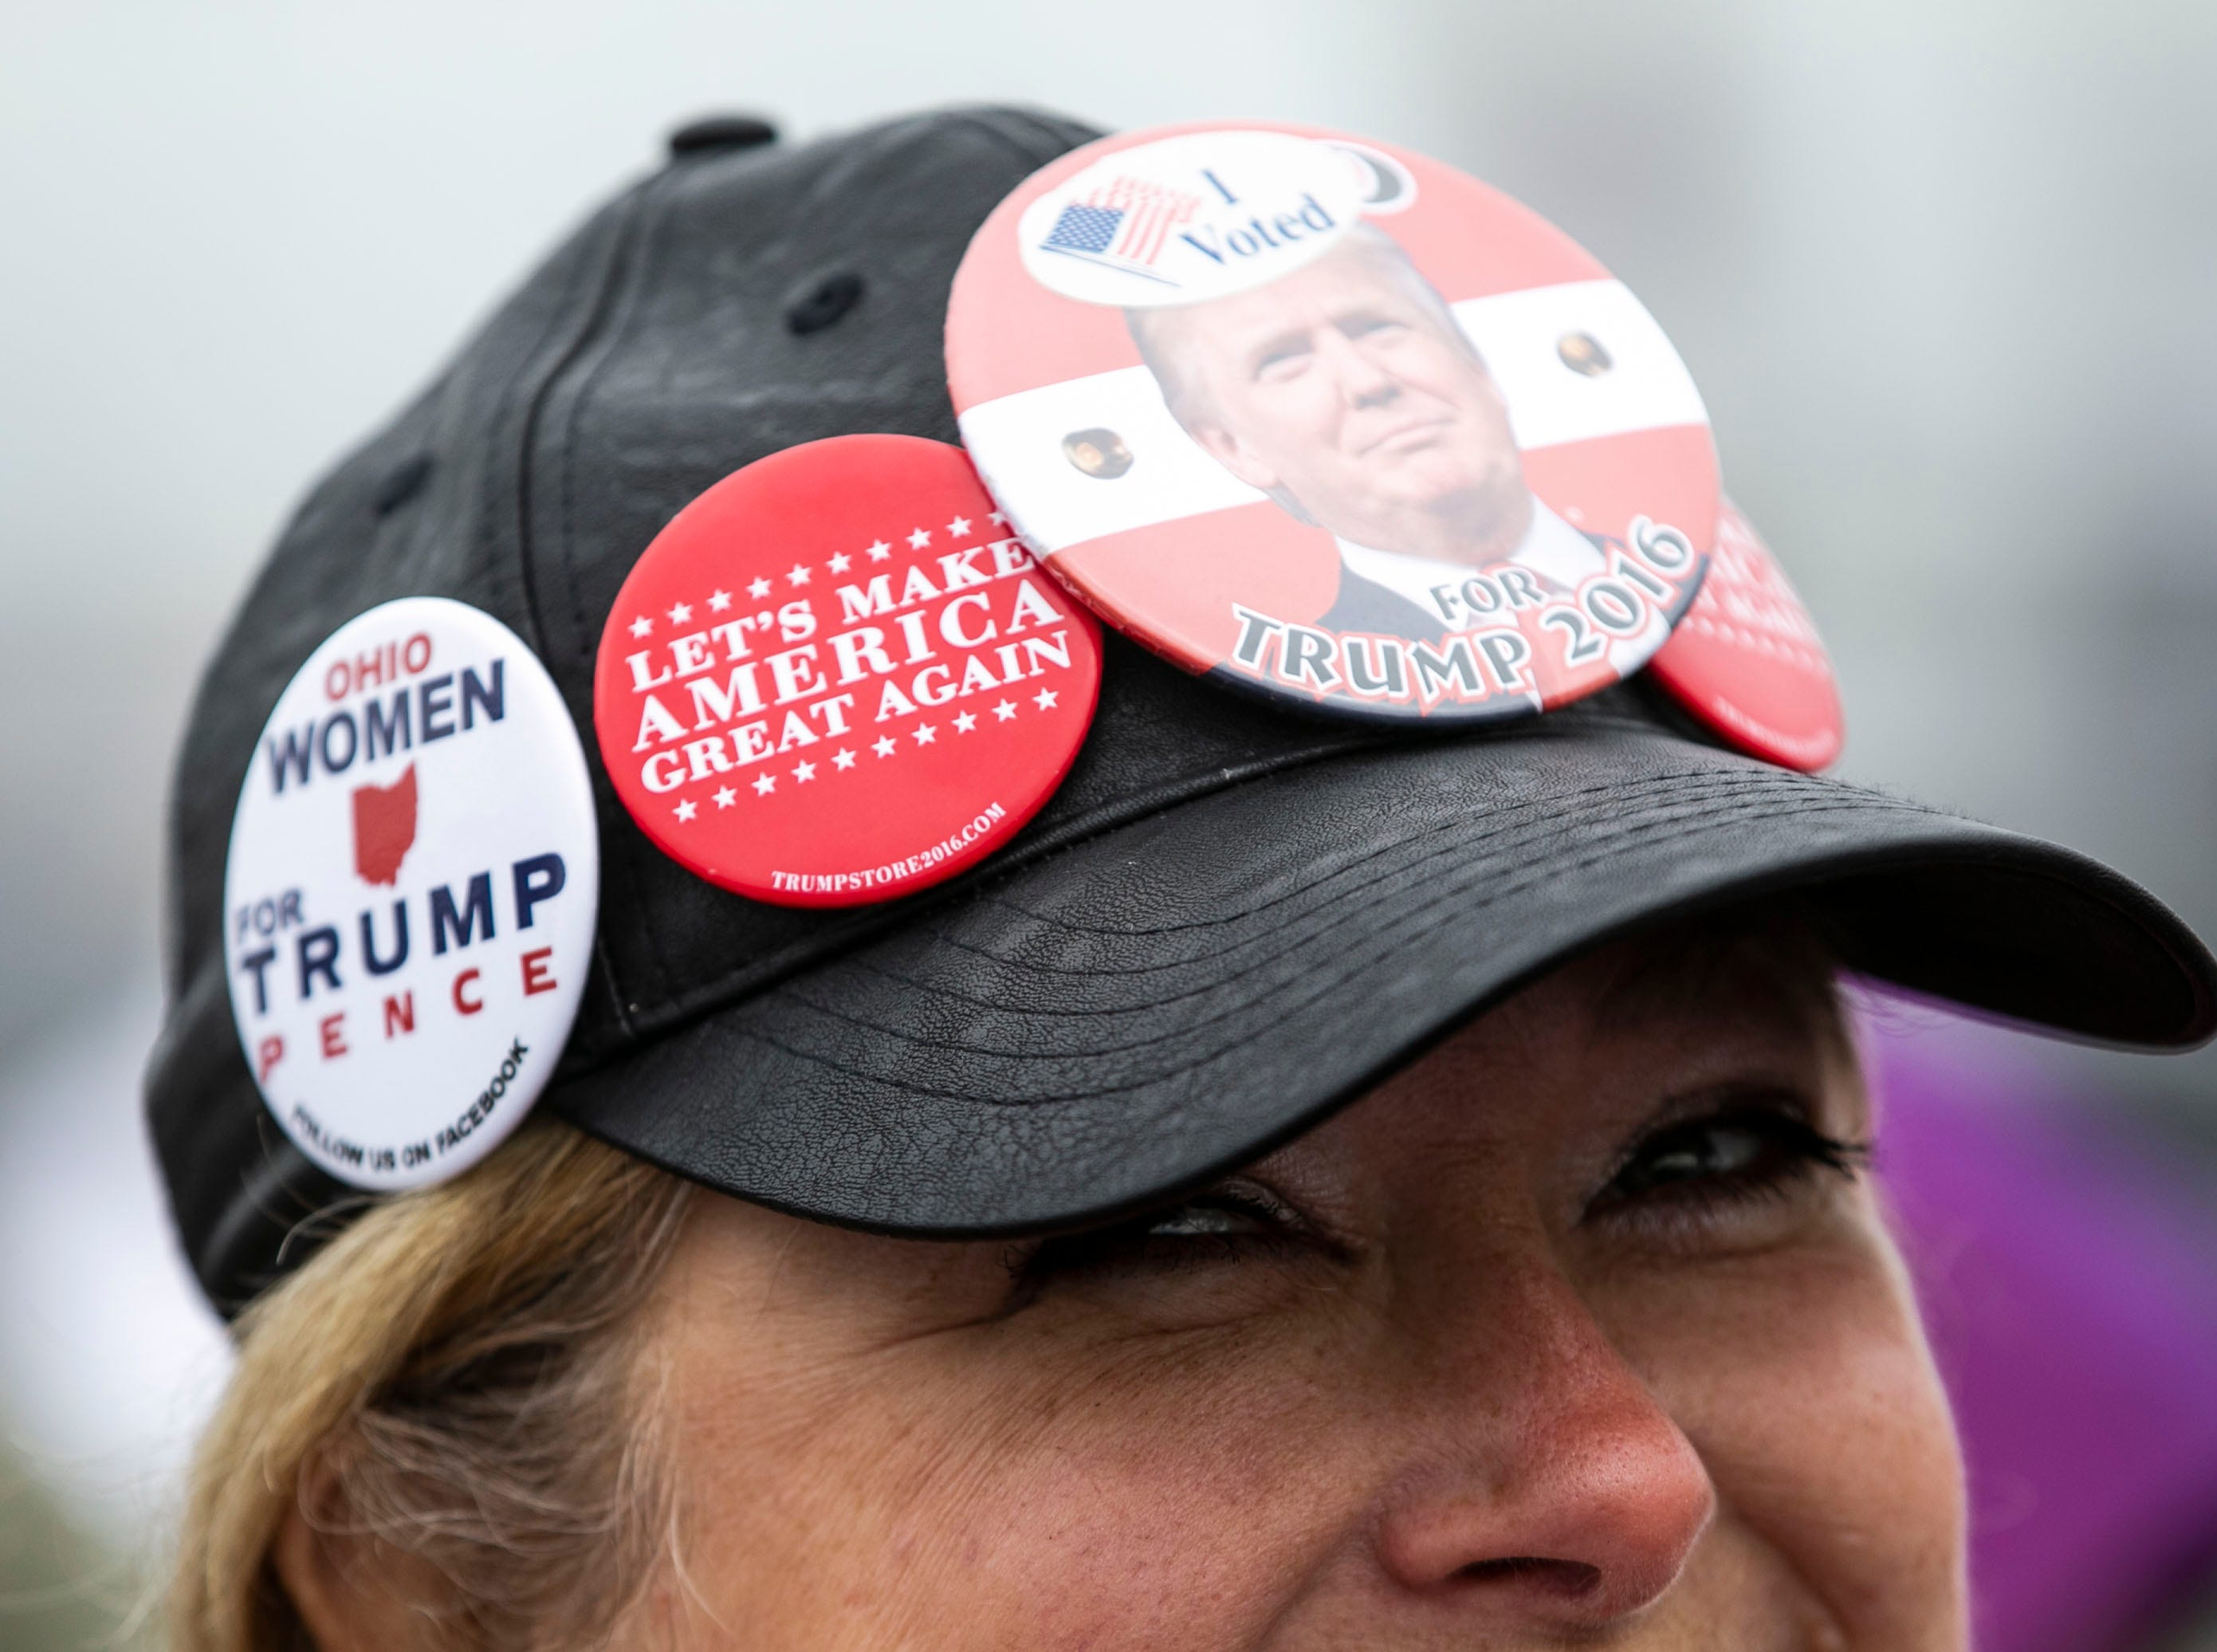 All sorts of Donald Trump buttons were worn by women and men -- as well as buttons against former opponent Hilary Clinton -- while waiting in a parking lot outside the Alumni Coliseum for the speech of President Donald Trump later Saturday night.